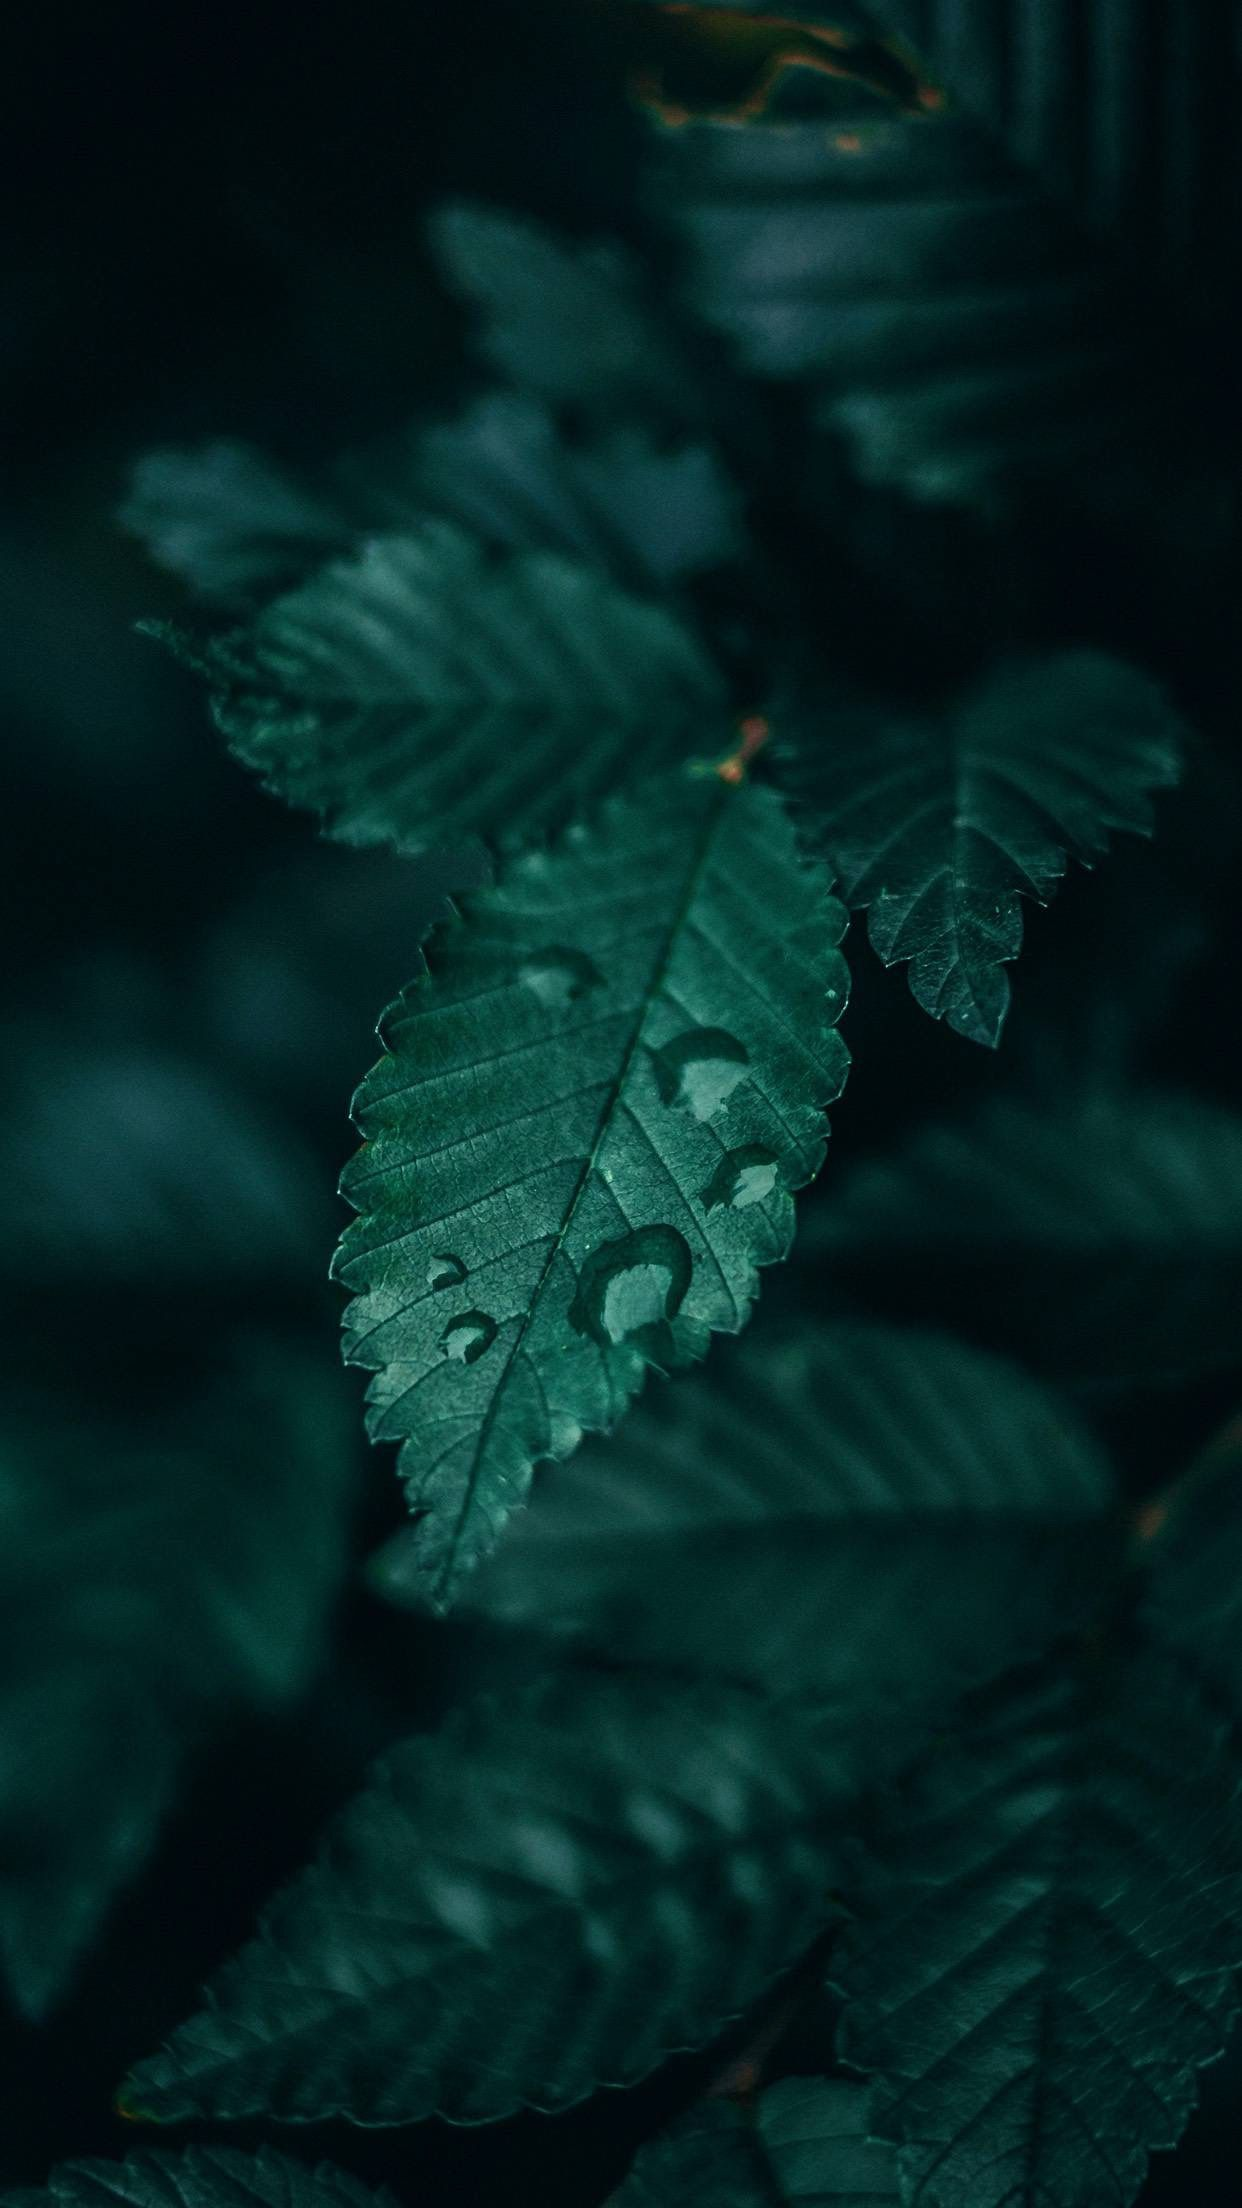 Pin By Namanpreet On Wallpaper Dark Green Aesthetic Green Nature Leaf Photography